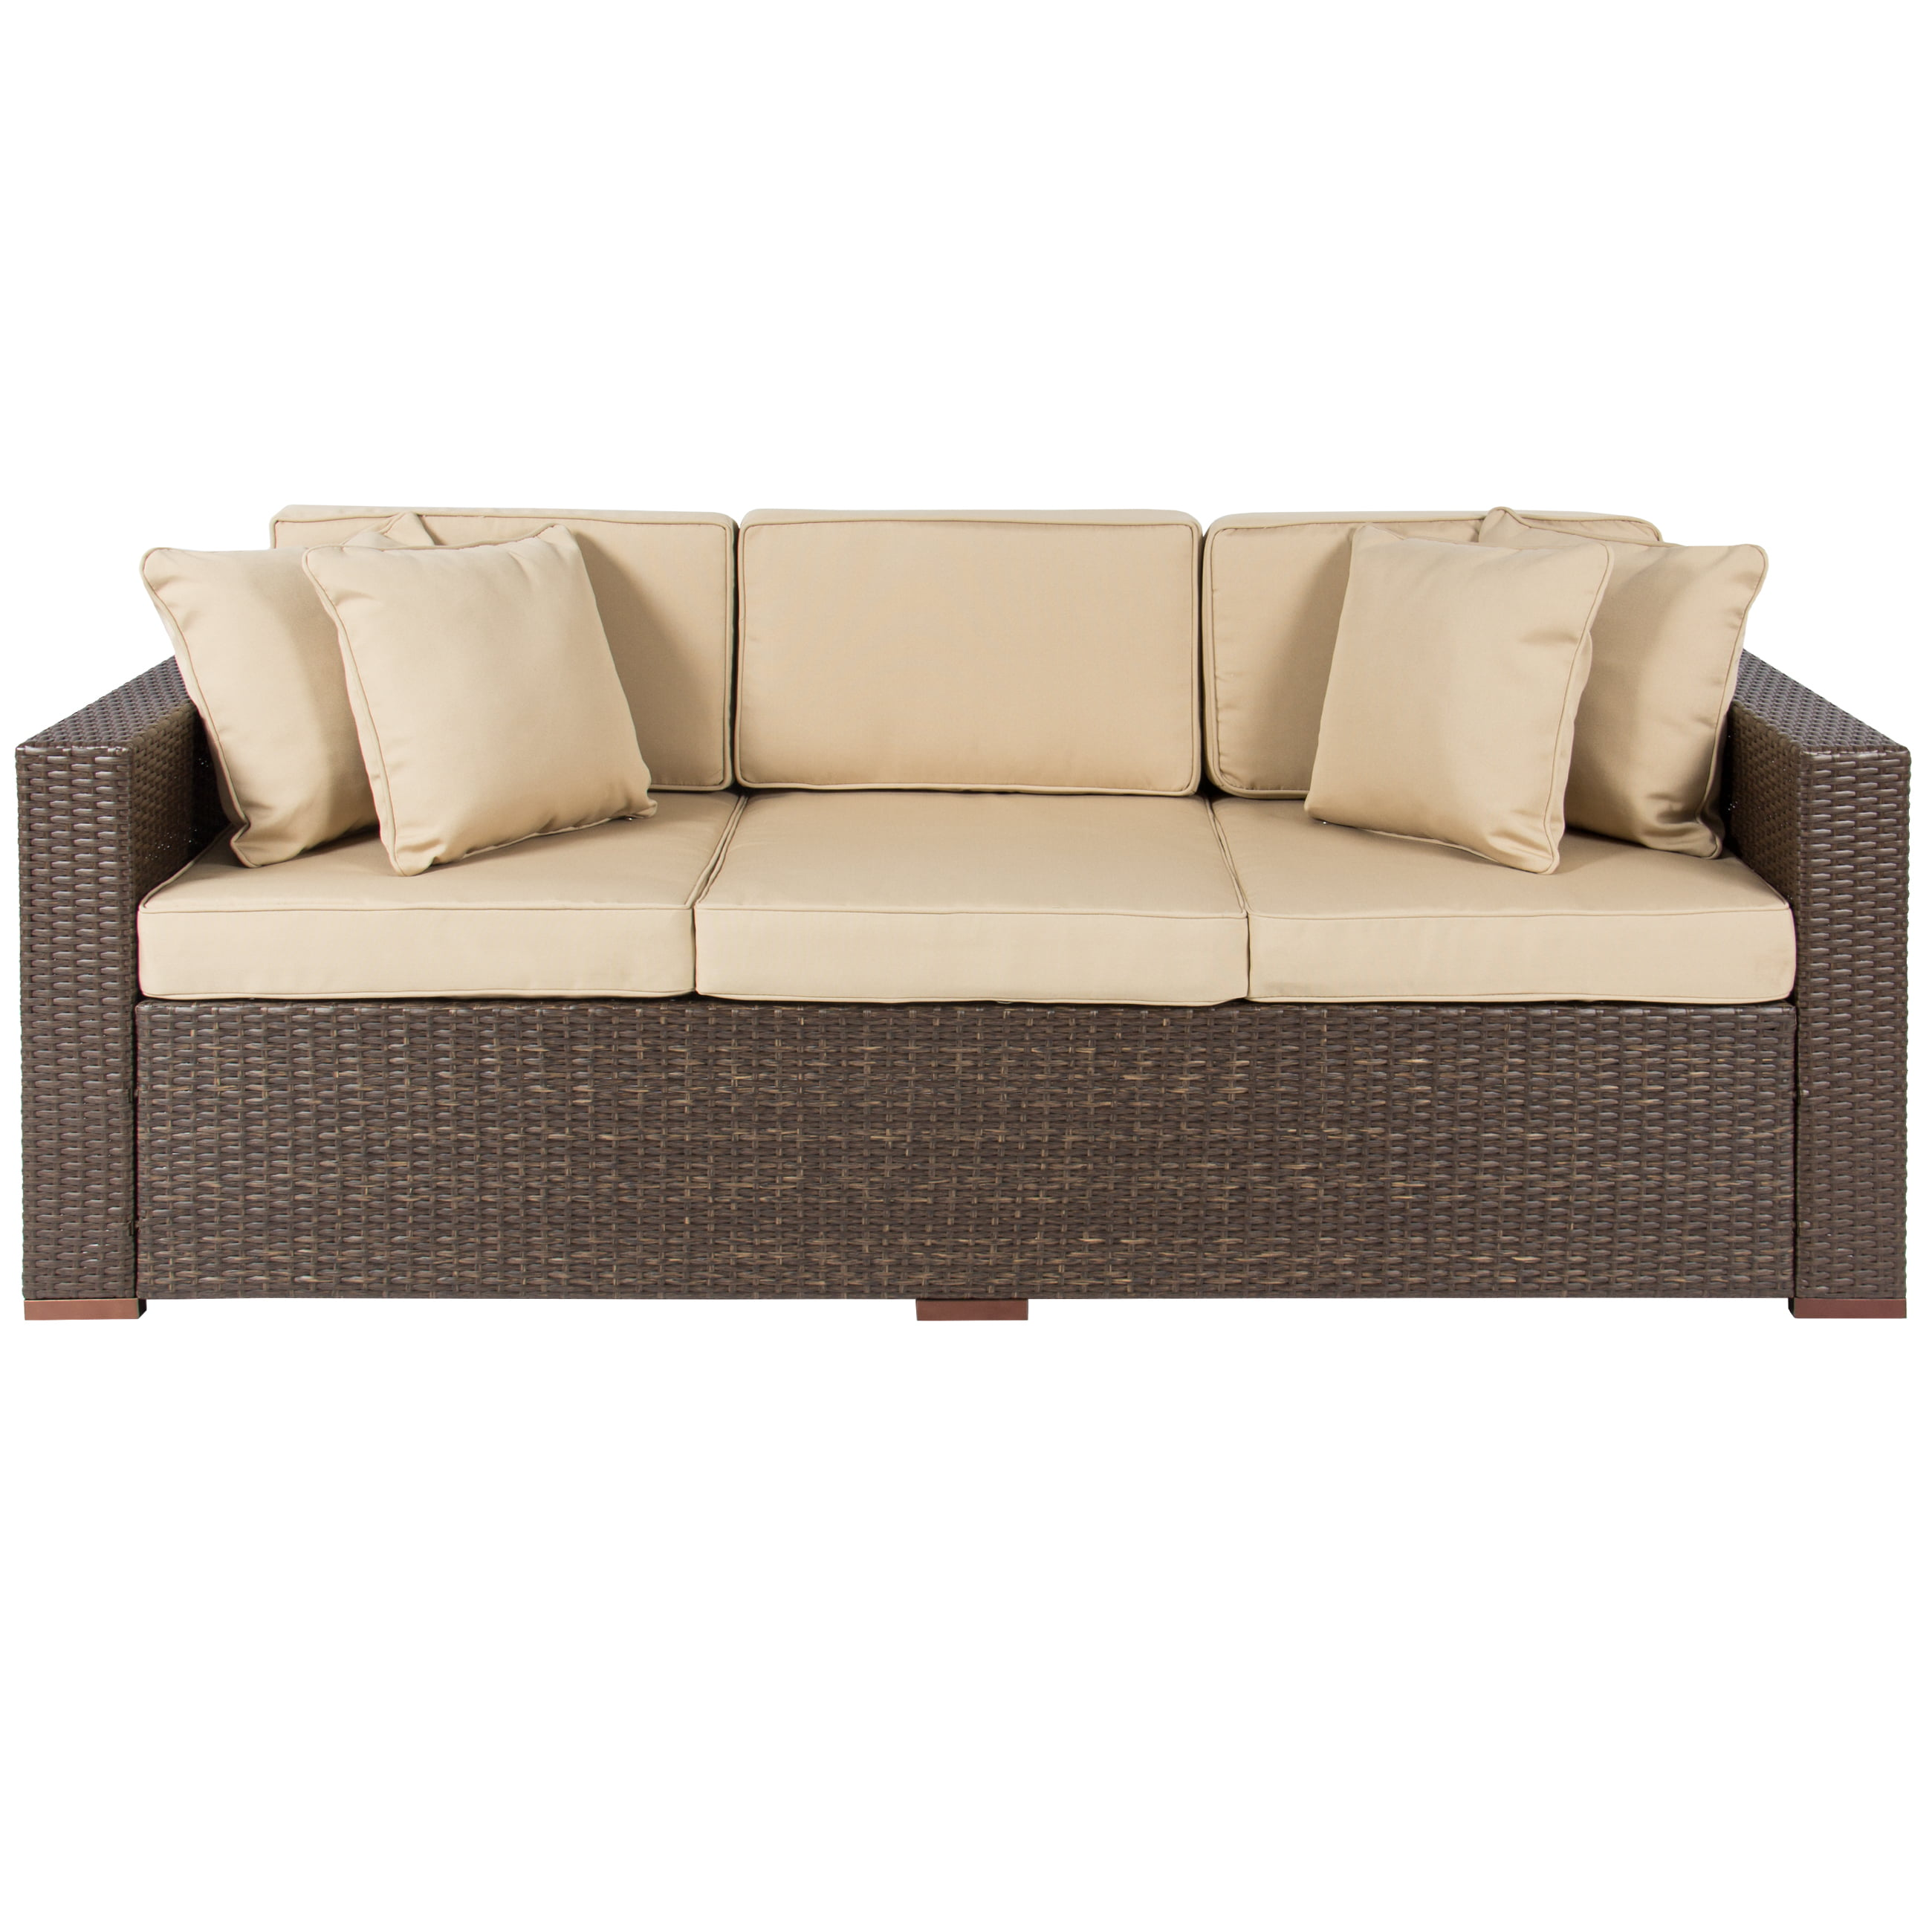 3 seat patio sofa better homes and gardens azalea ridge for Divan and settee